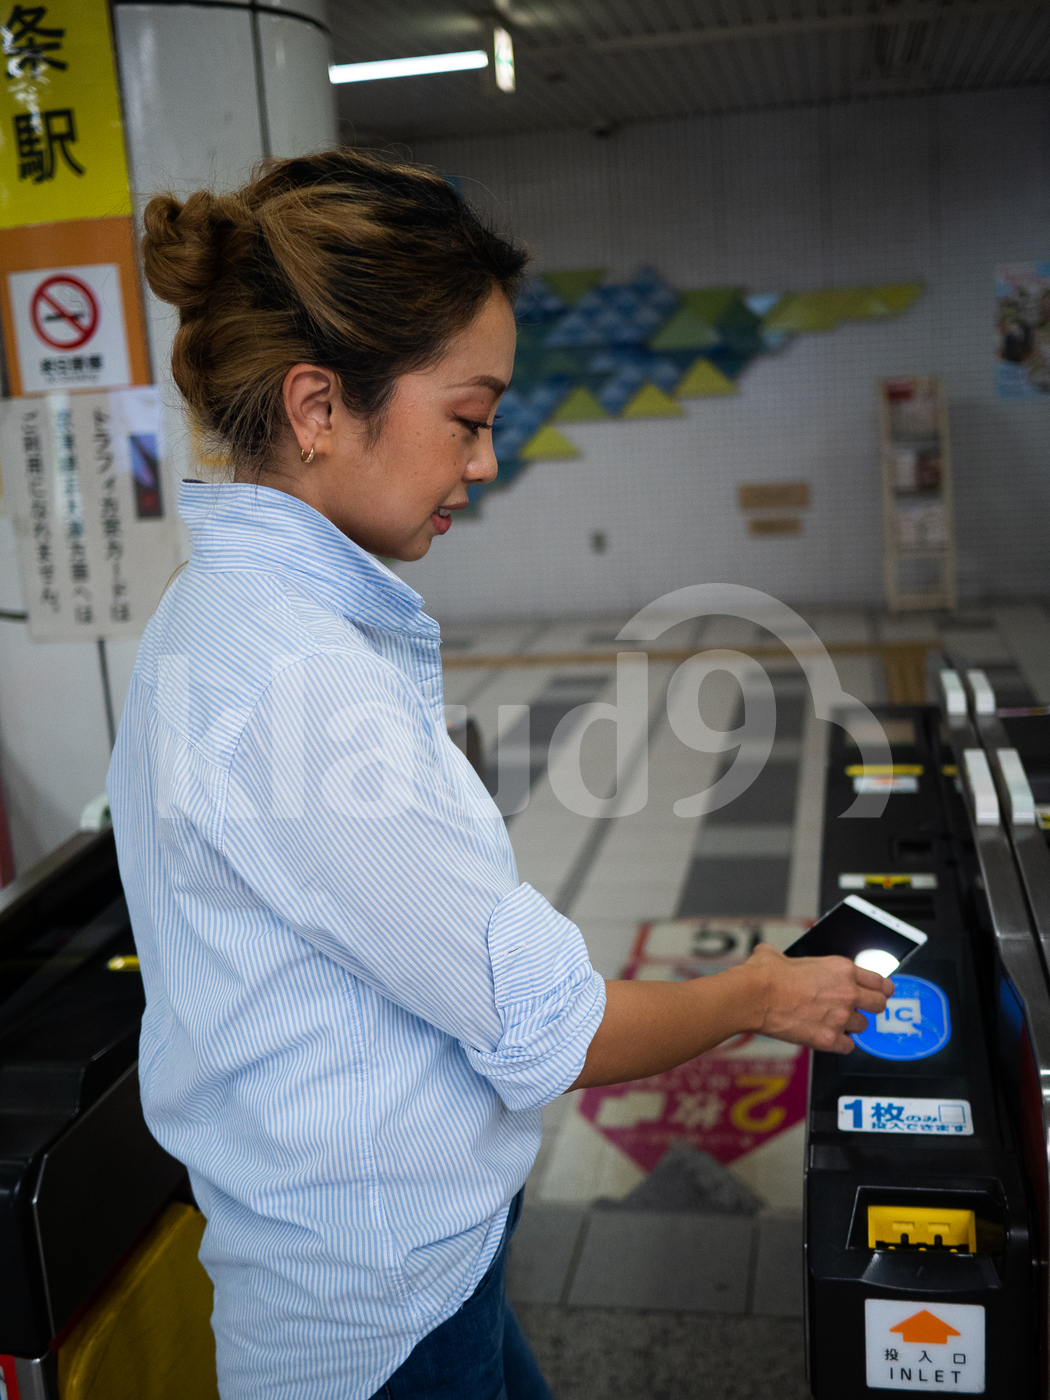 Japanese woman making payment with mobile in train station